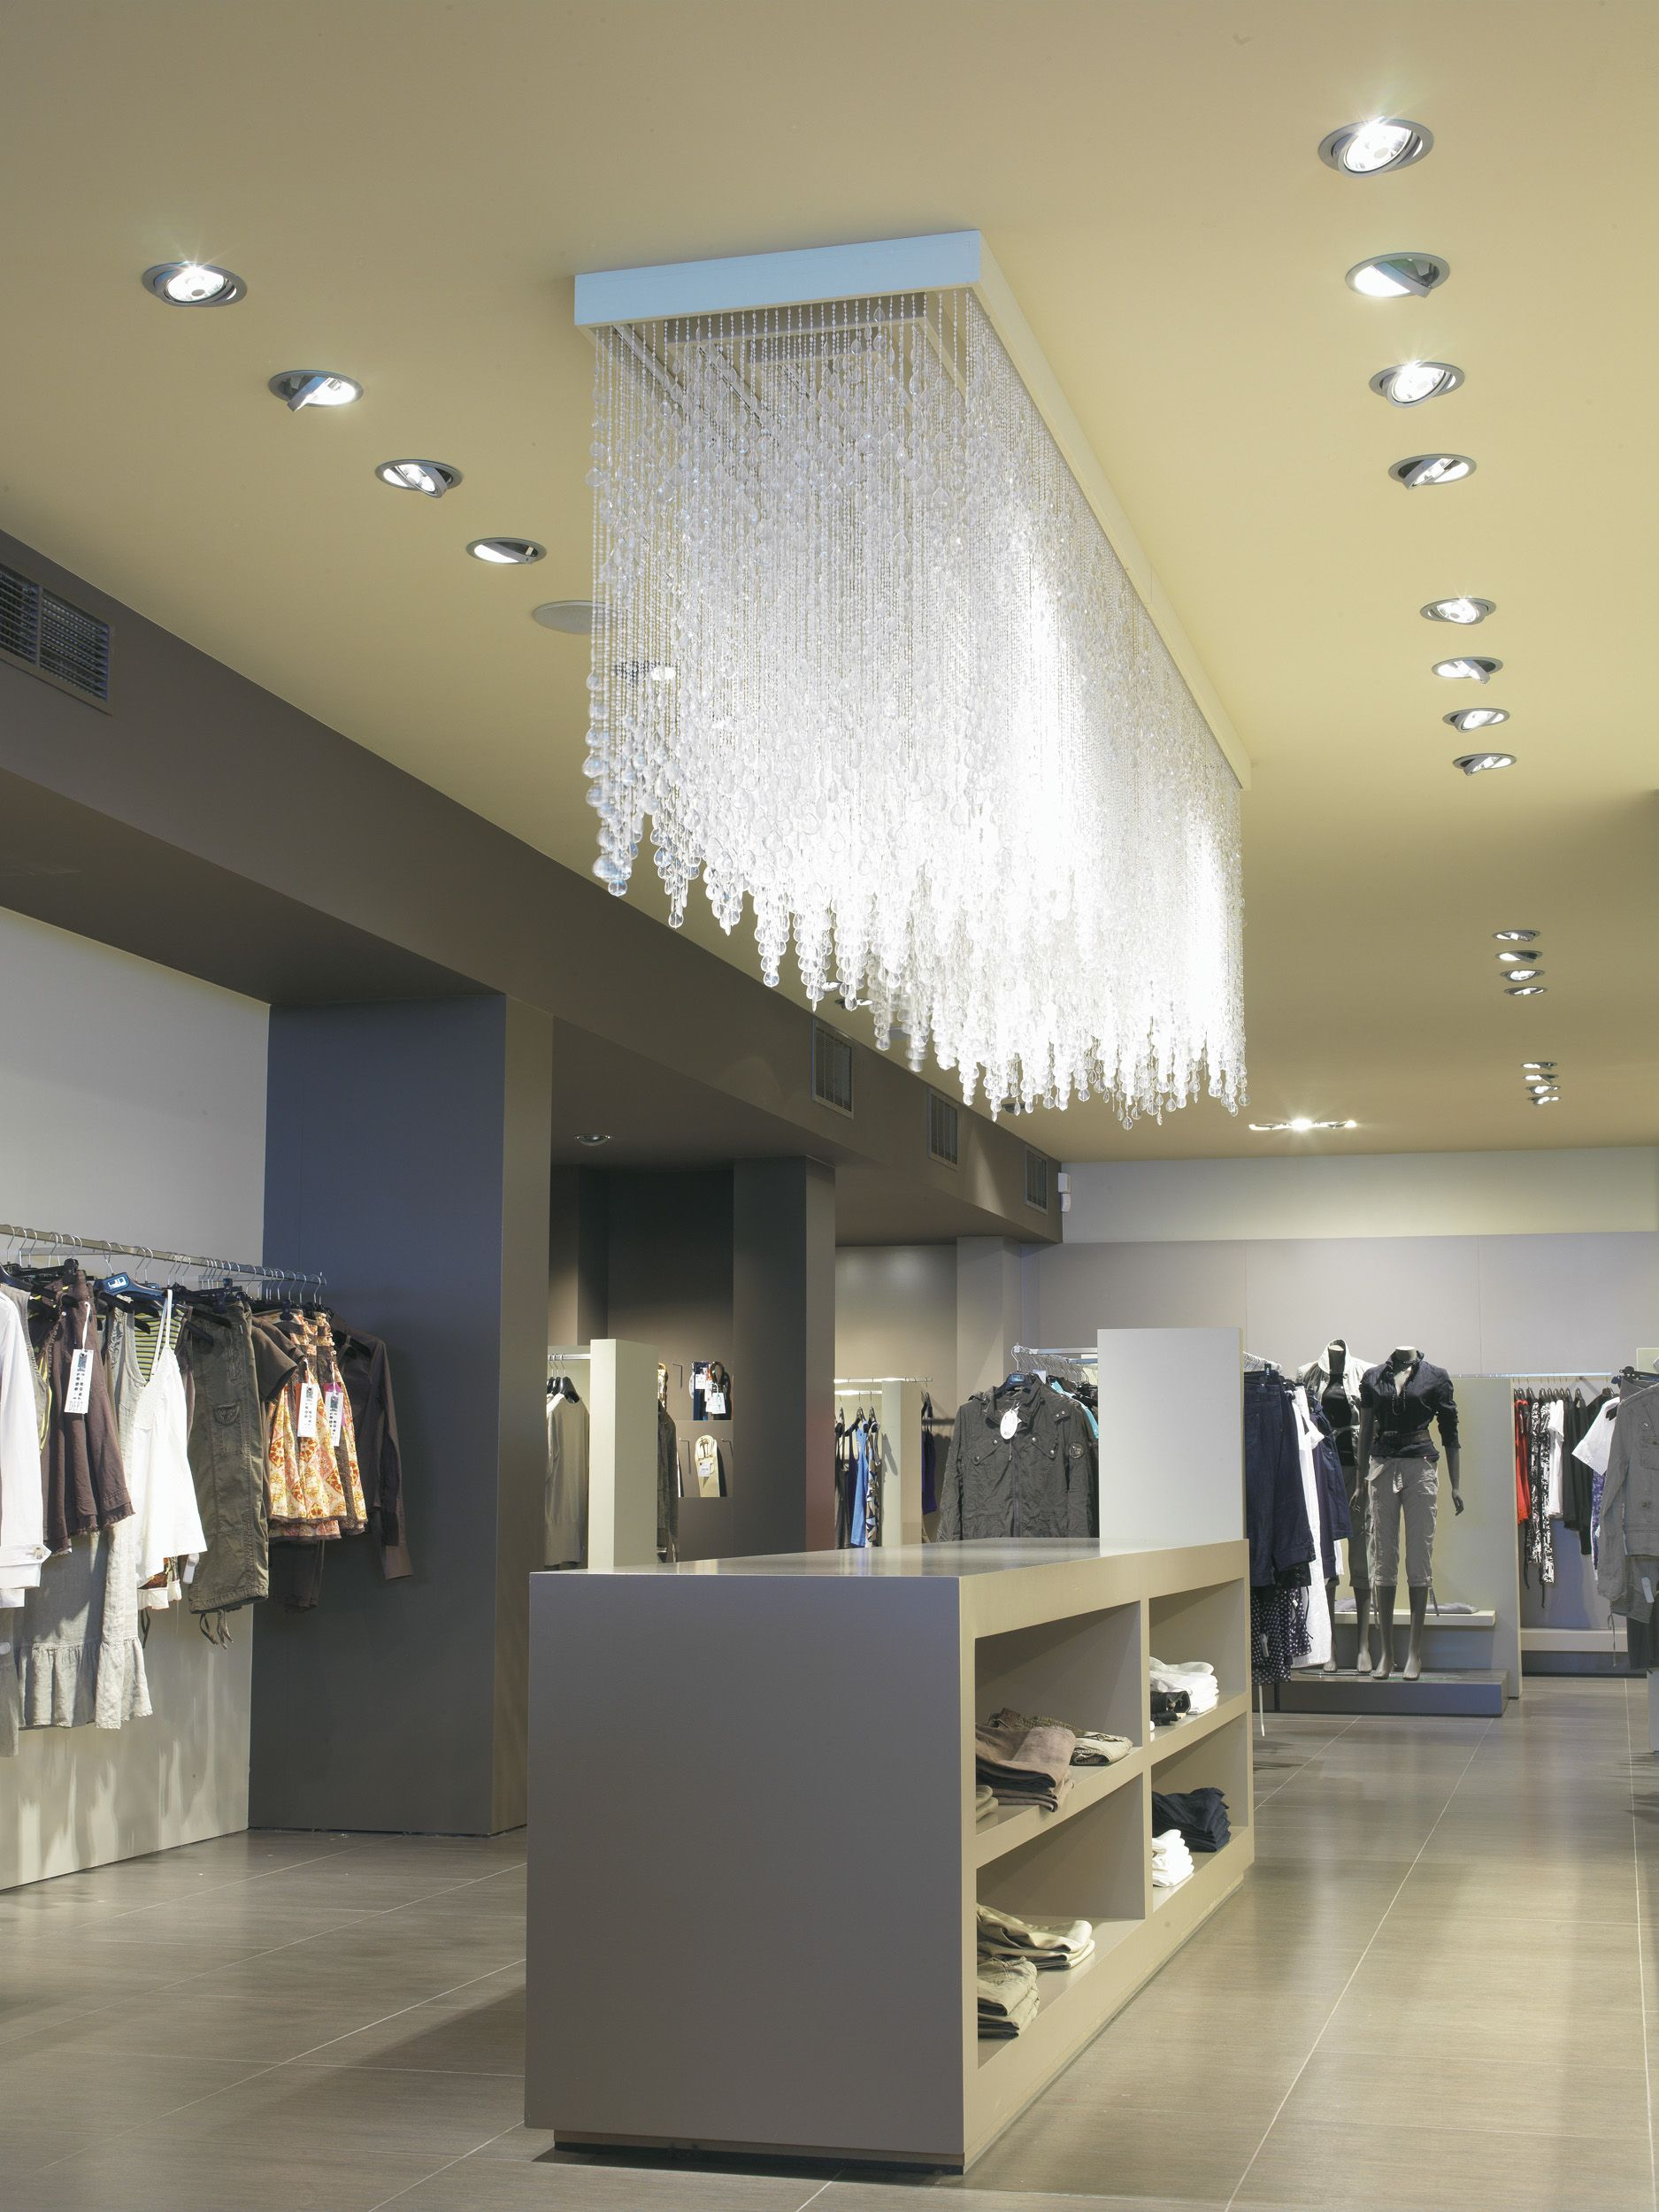 Pin by skialight on customized retail stores light fittings in light fittings shots retail light fixtures shops sleeve retail merchandising arubaitofo Choice Image